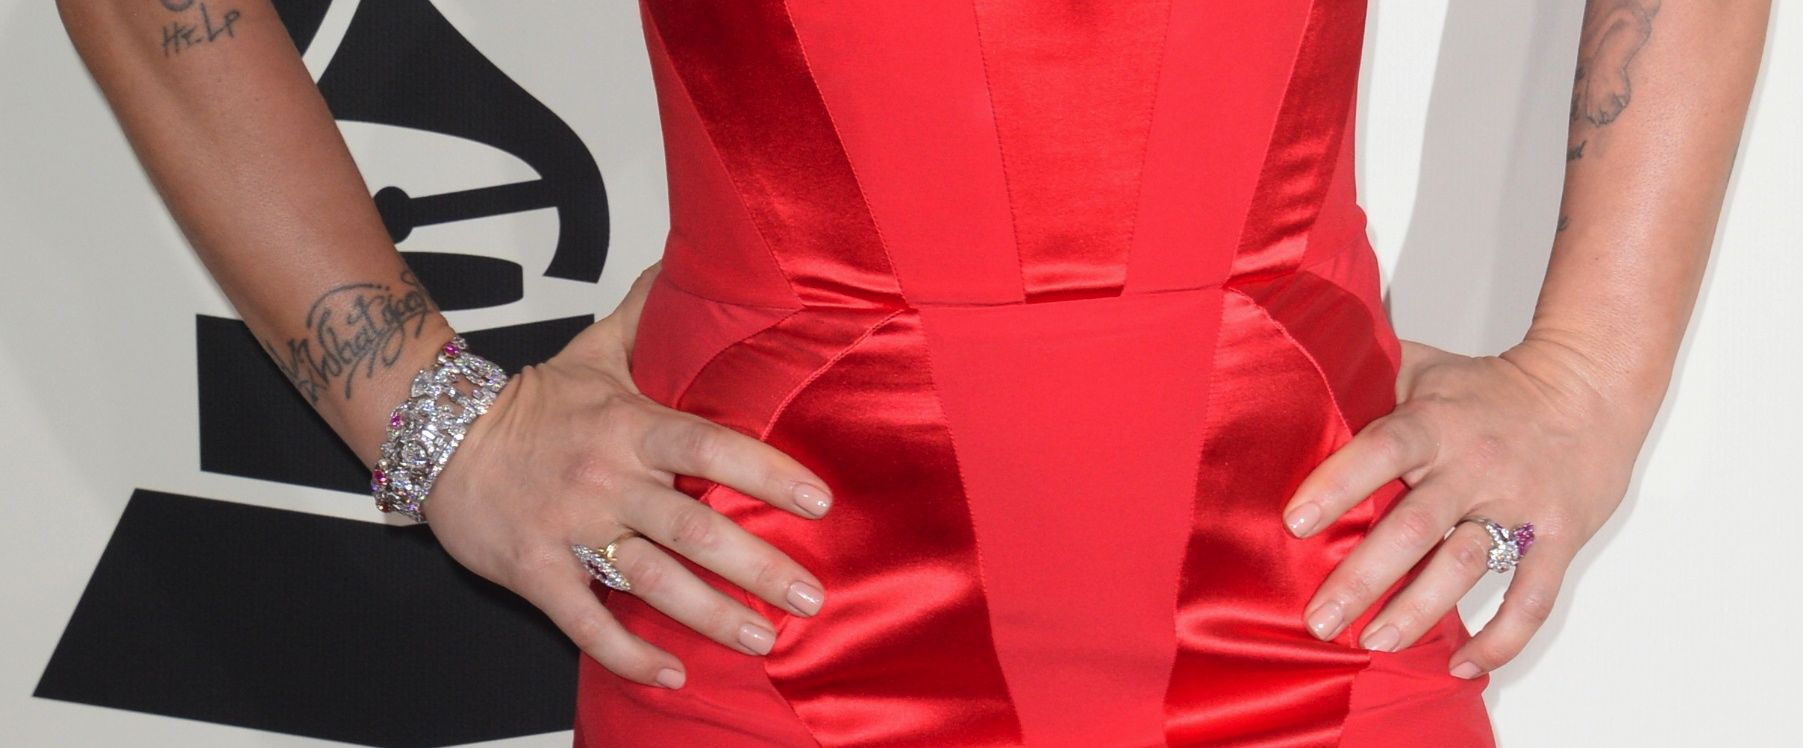 P!NK\'s COVERGIRL Beauty Look at the 2014 GRAMMY Awards - The Staten ...